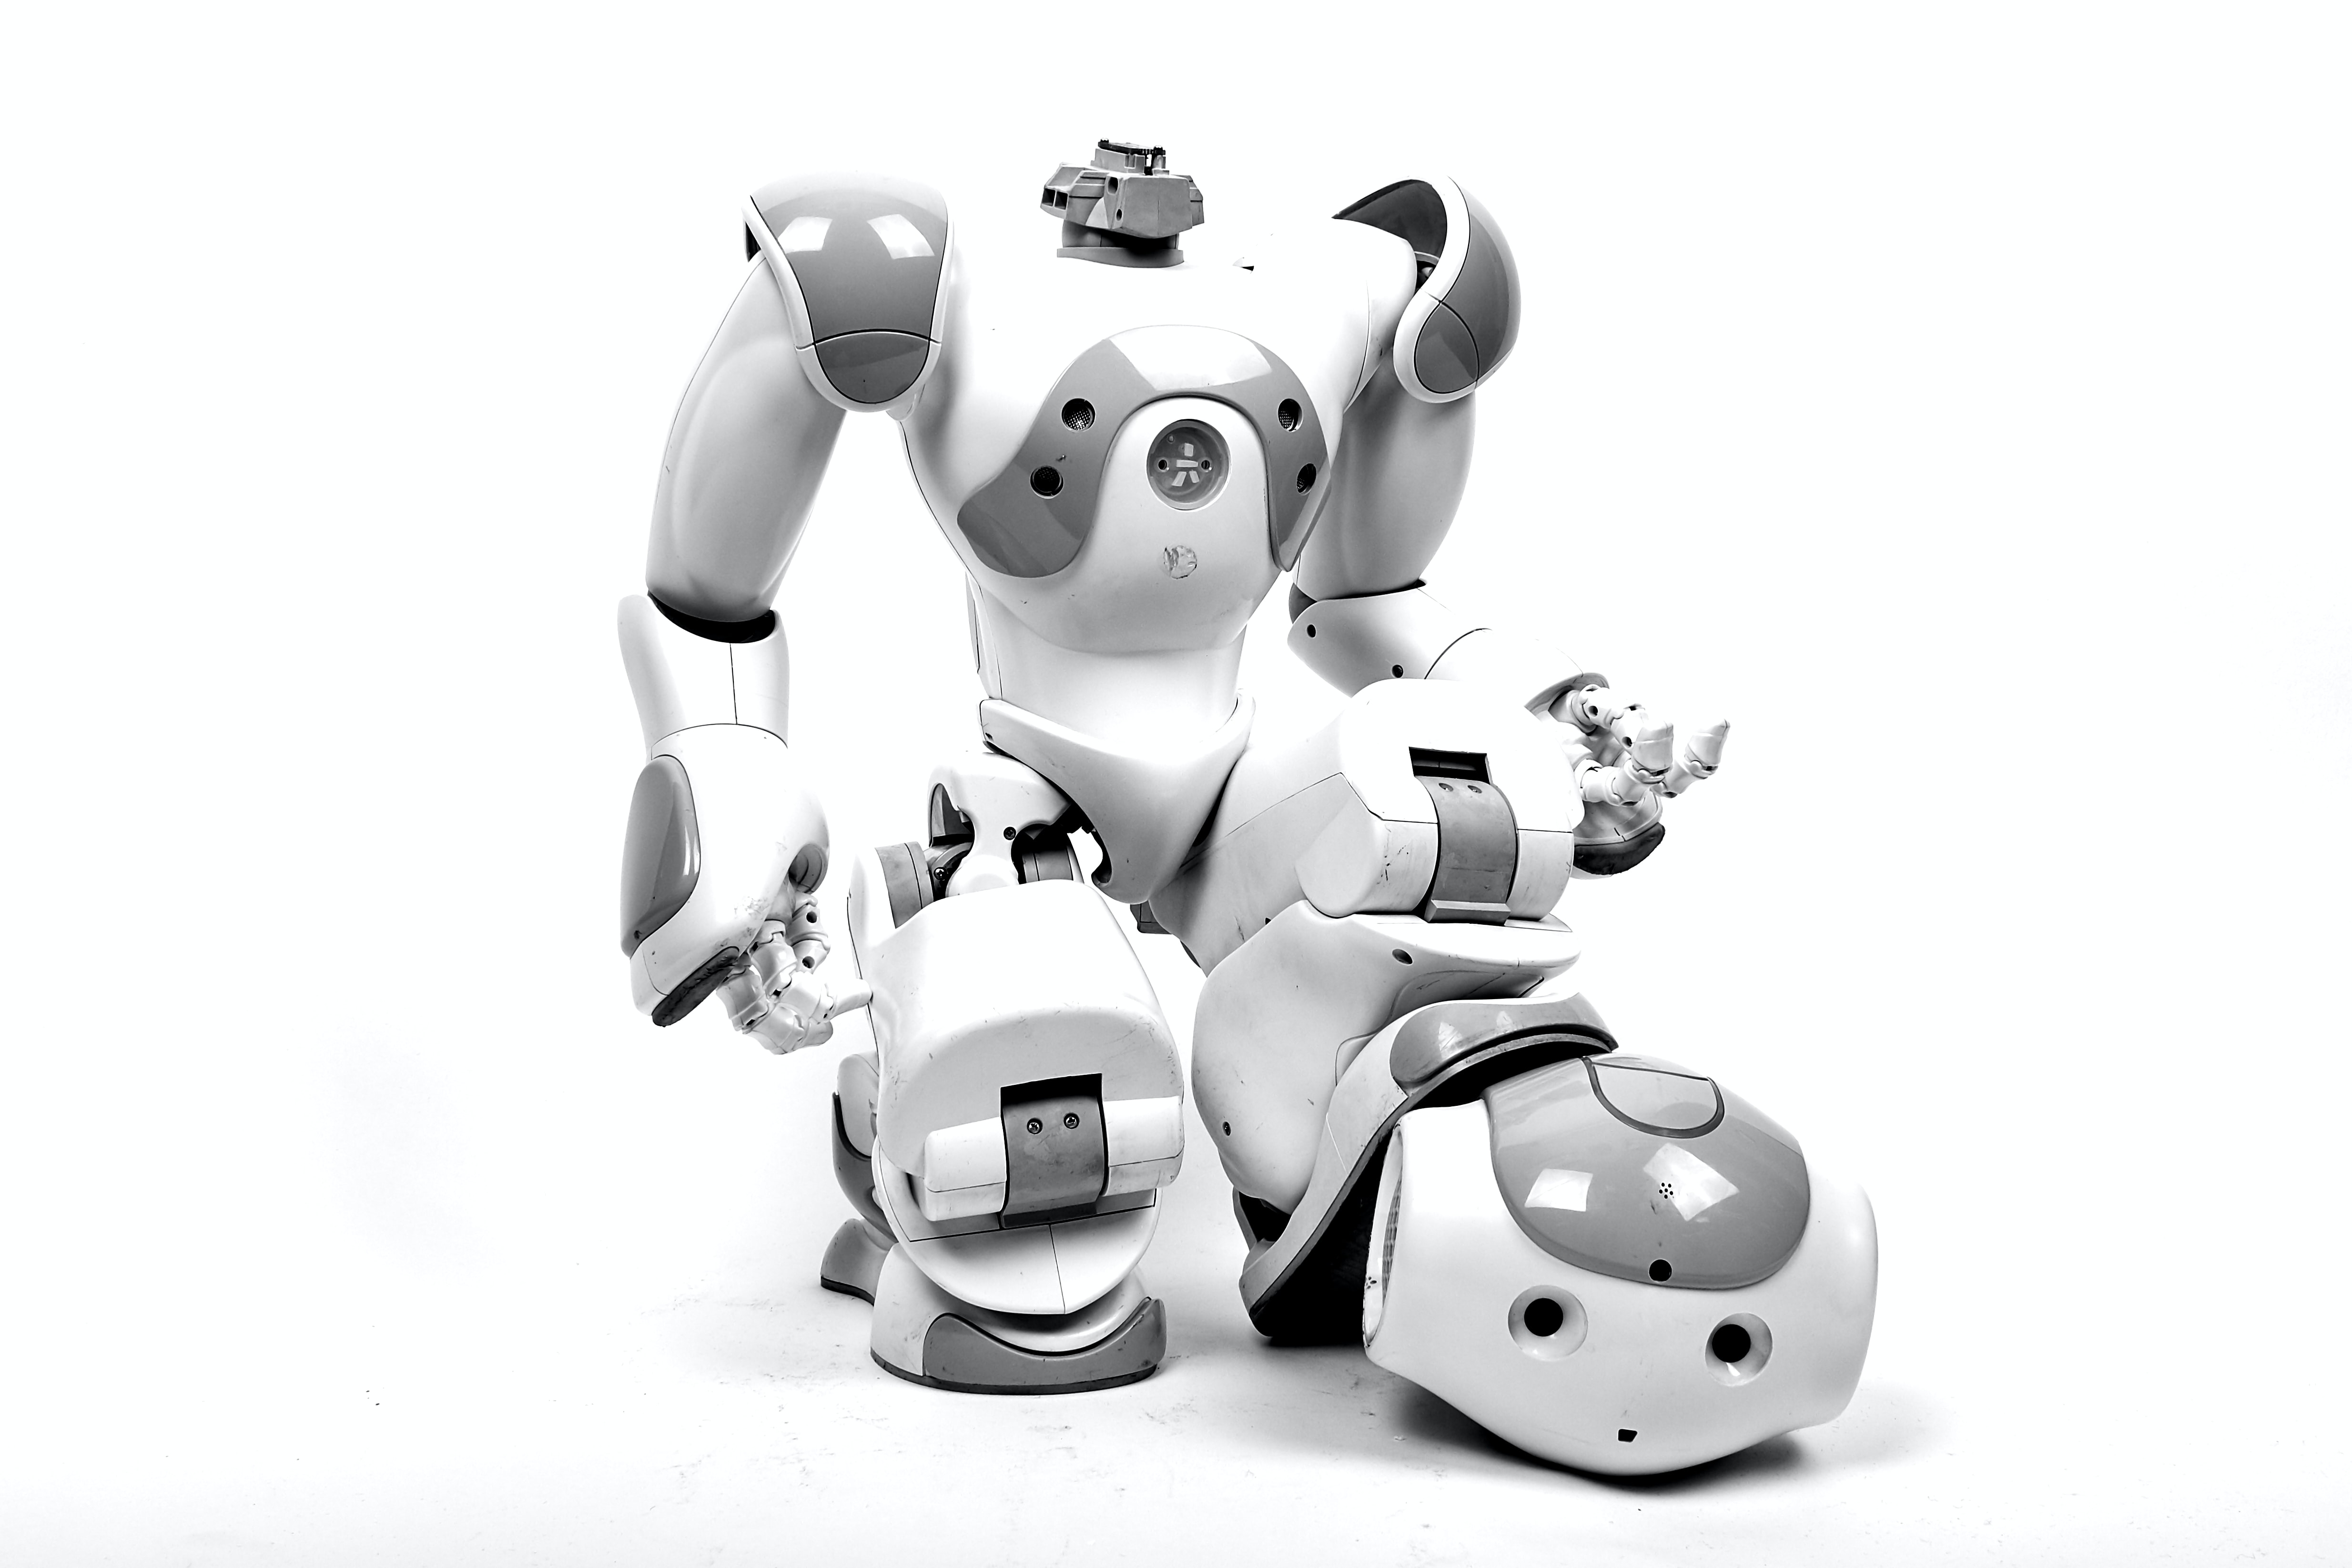 white and gray RoboSapien in white background